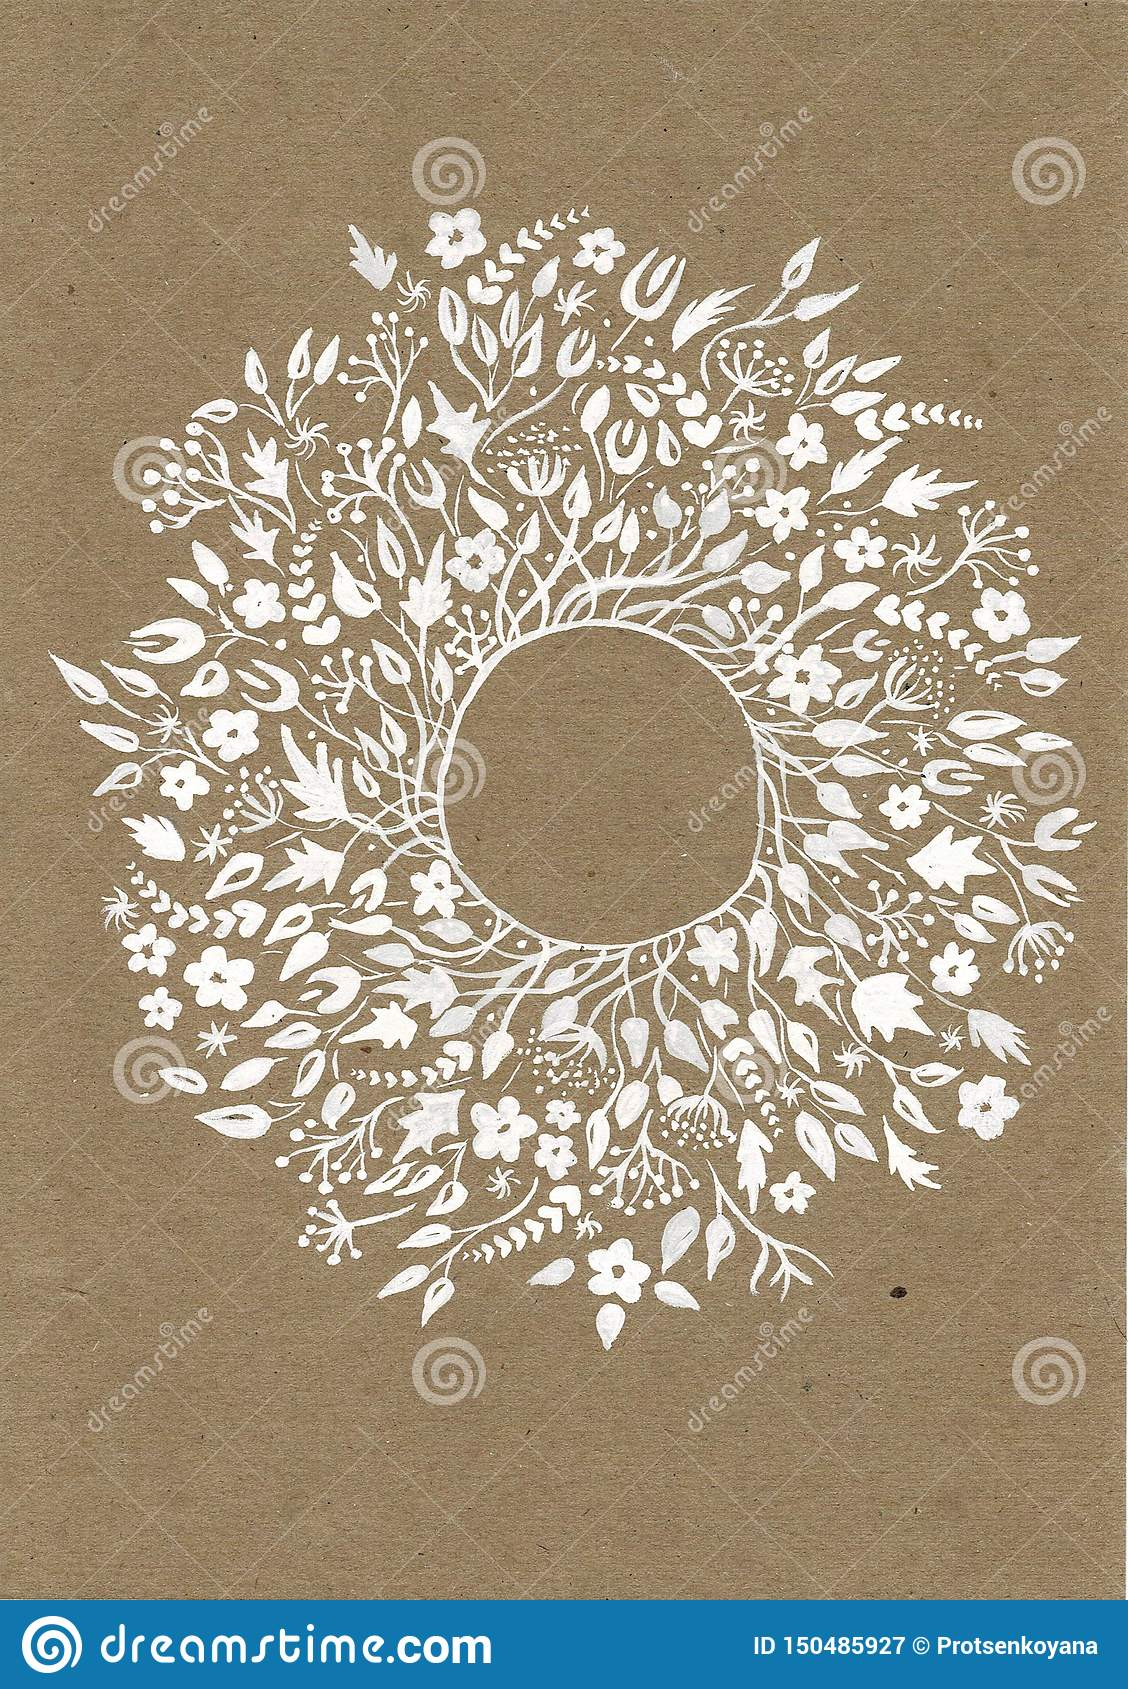 Beautiful greeting card with floral wreath and ribbon. Bright illustration, can be used as creating card, invitation